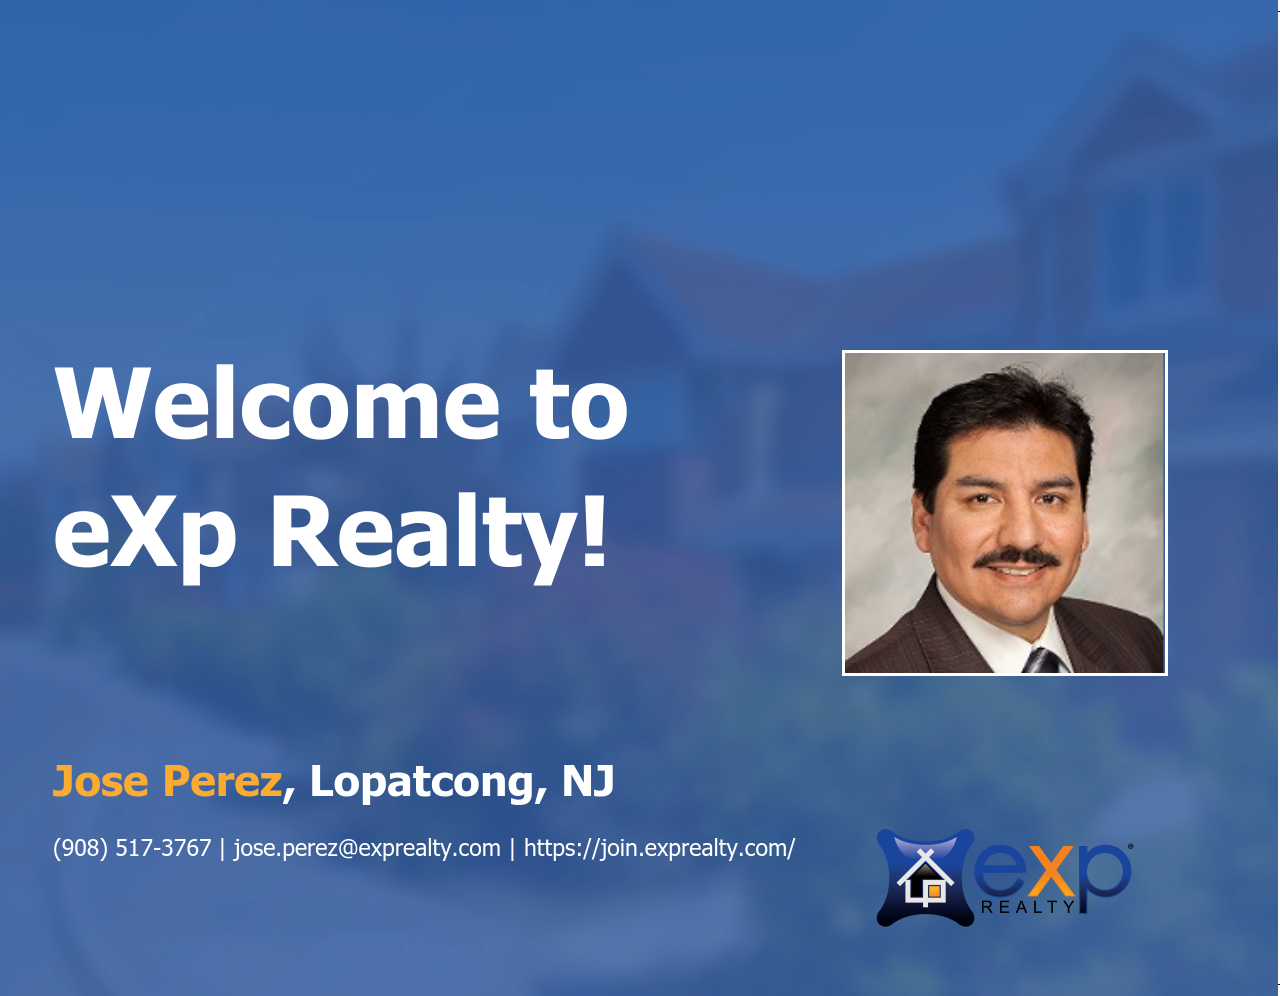 Welcome to eXp Realty Jose Perez!